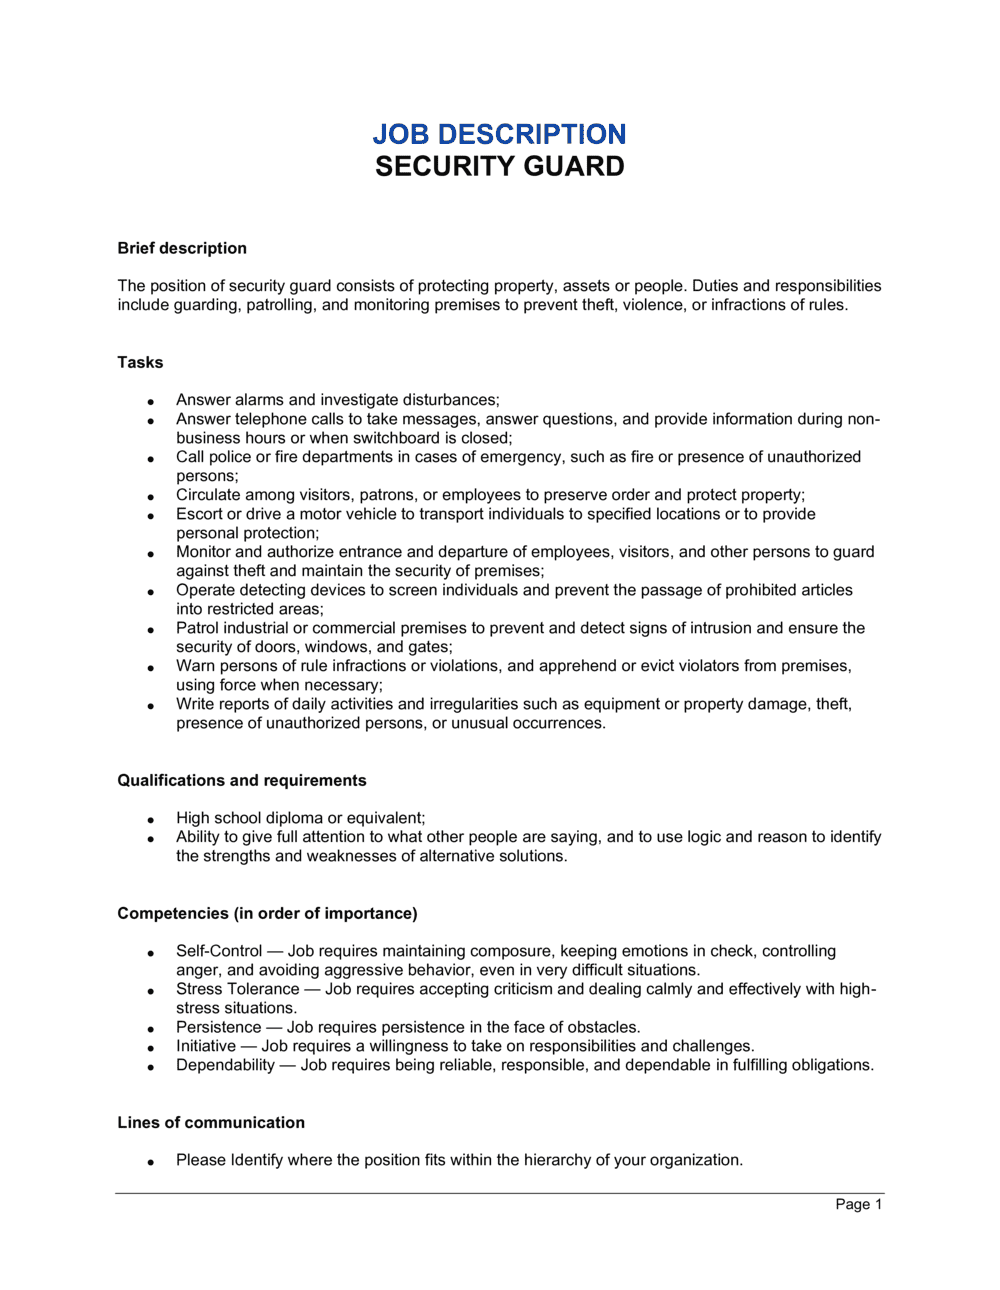 Business-in-a-Box's Security Guard Job Description Template